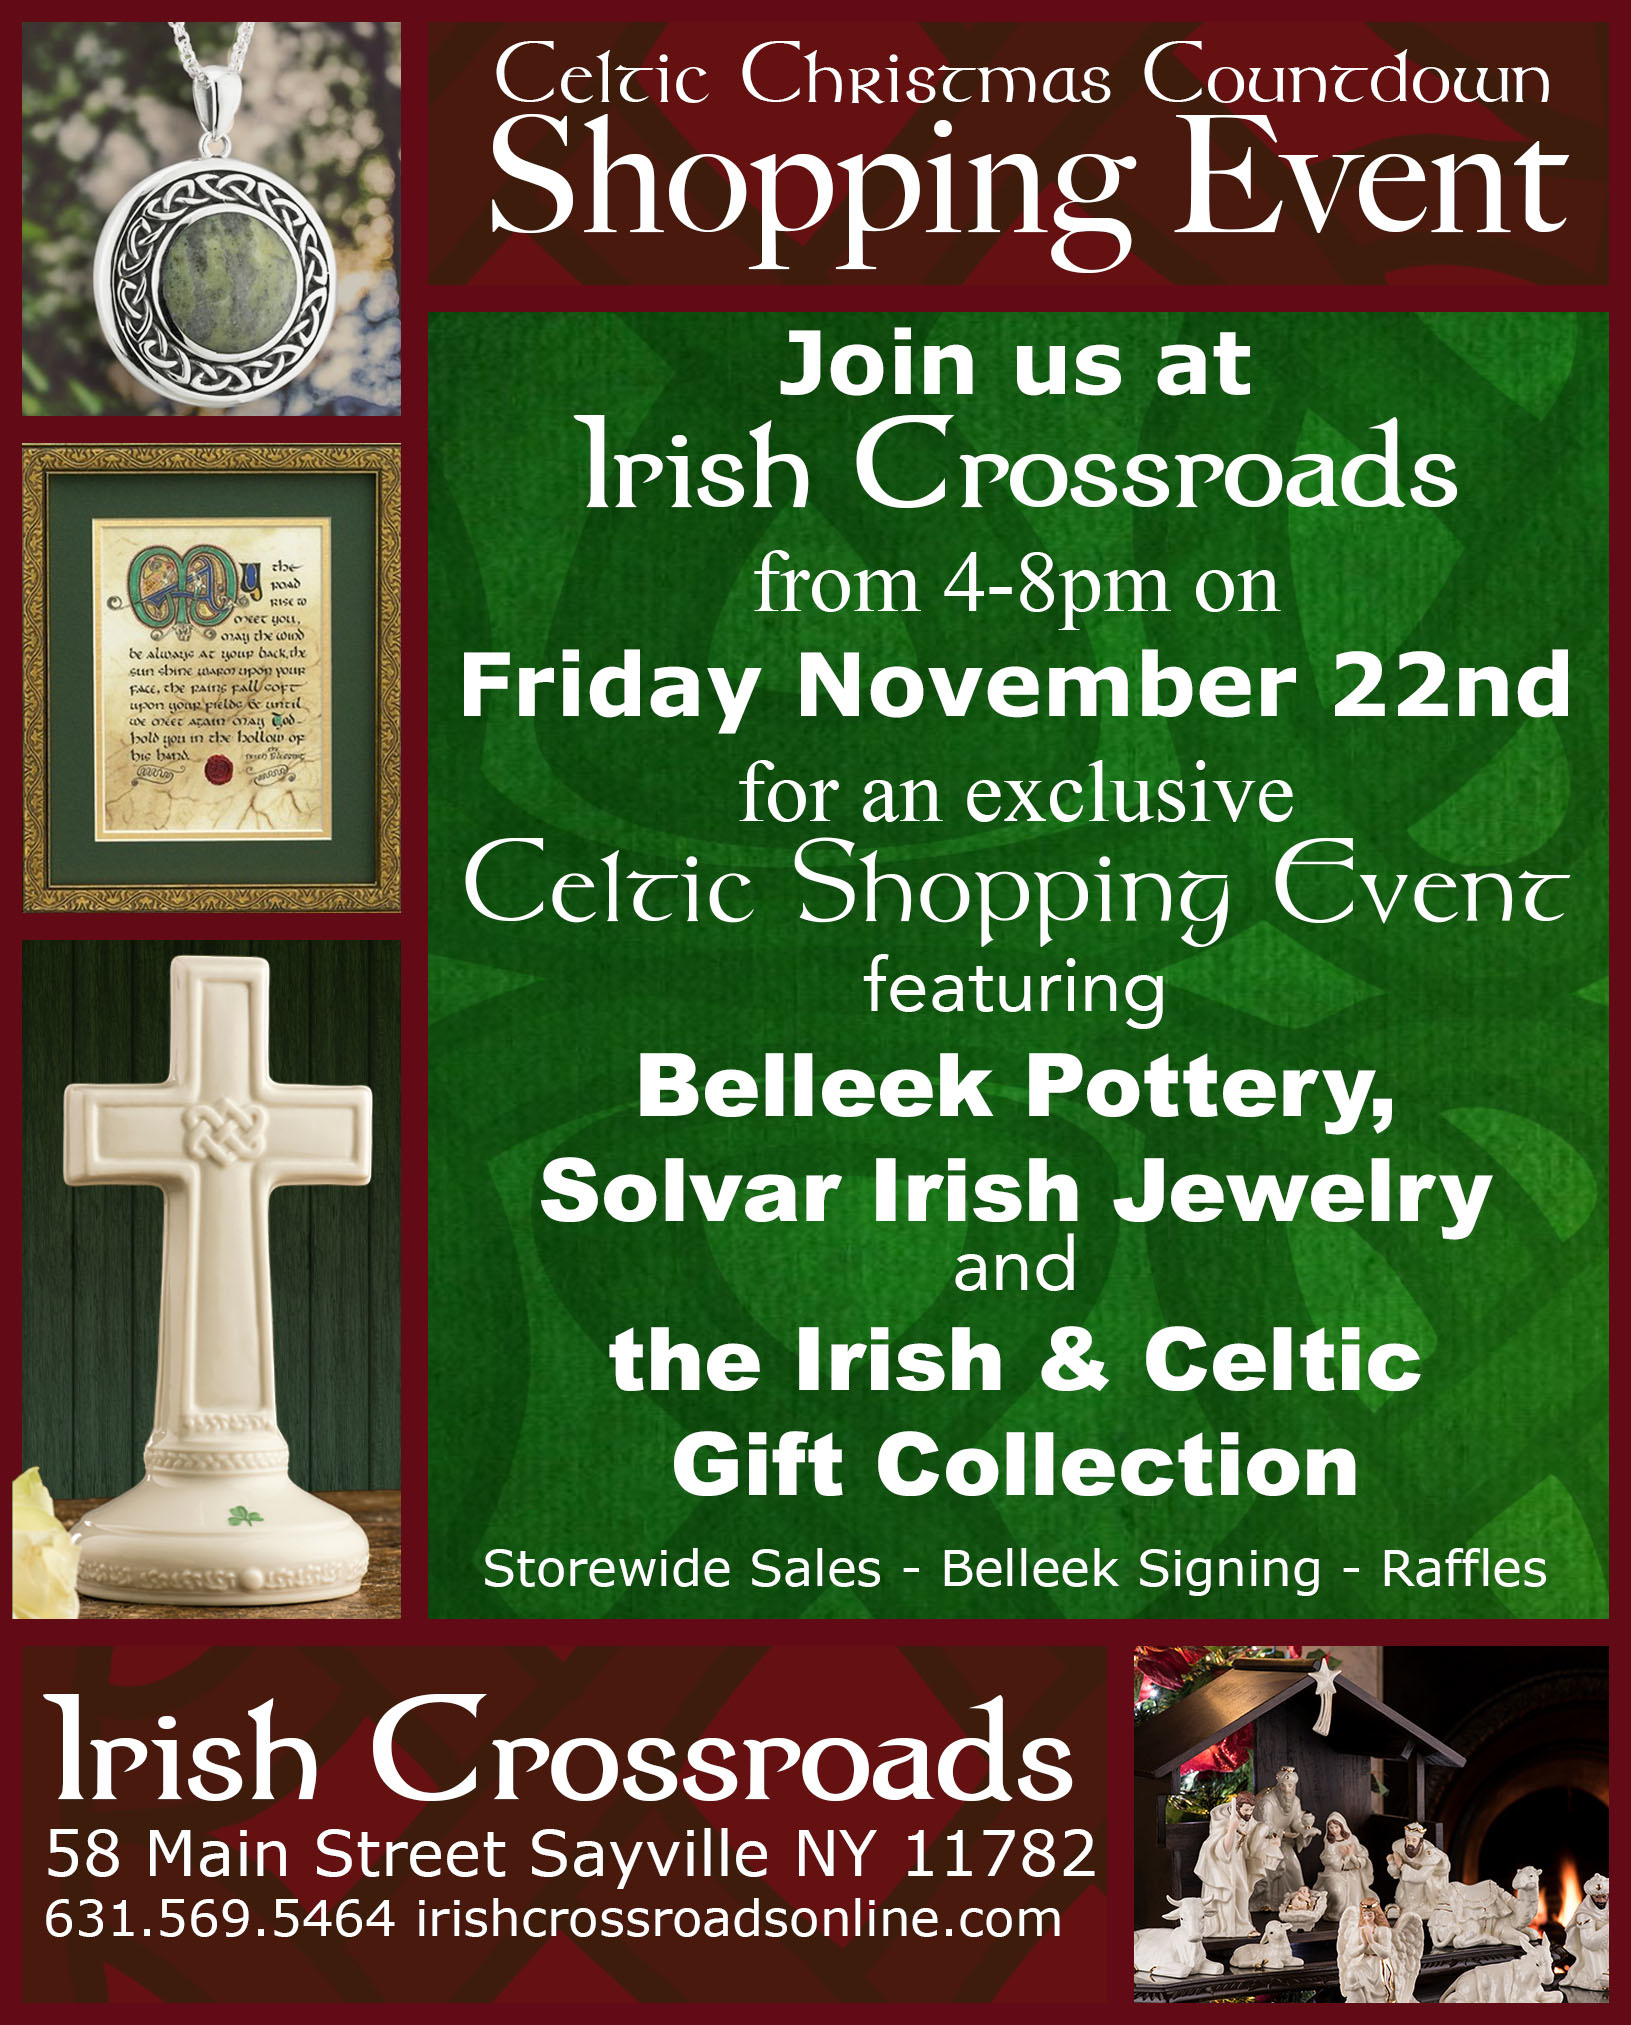 Celtic Christmas Countdown Shopping Event 2019